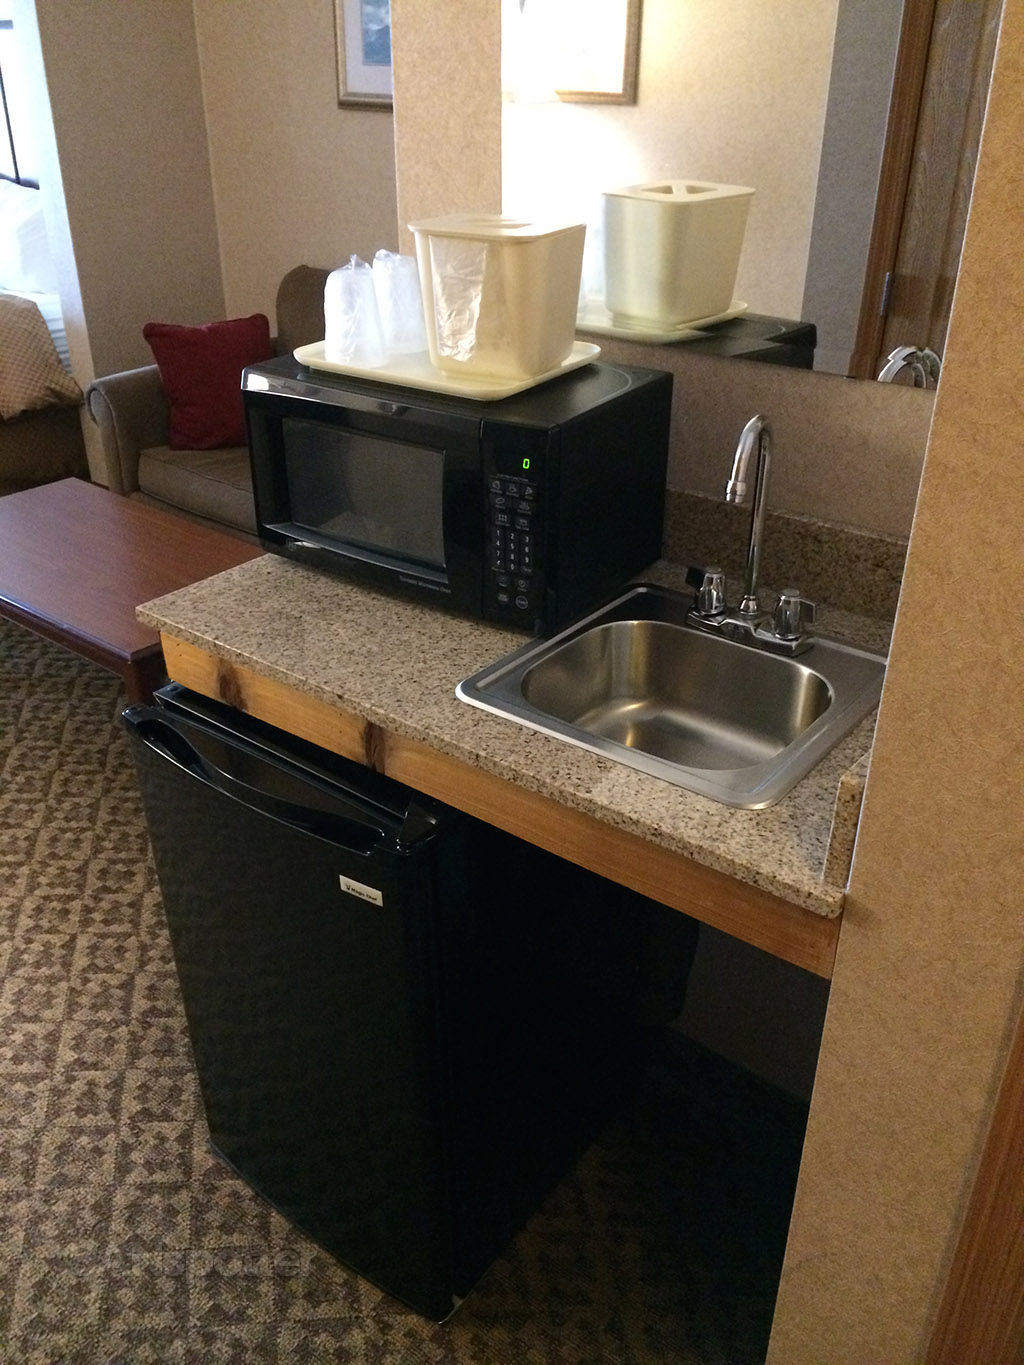 Sink, refrigerator, and microwave